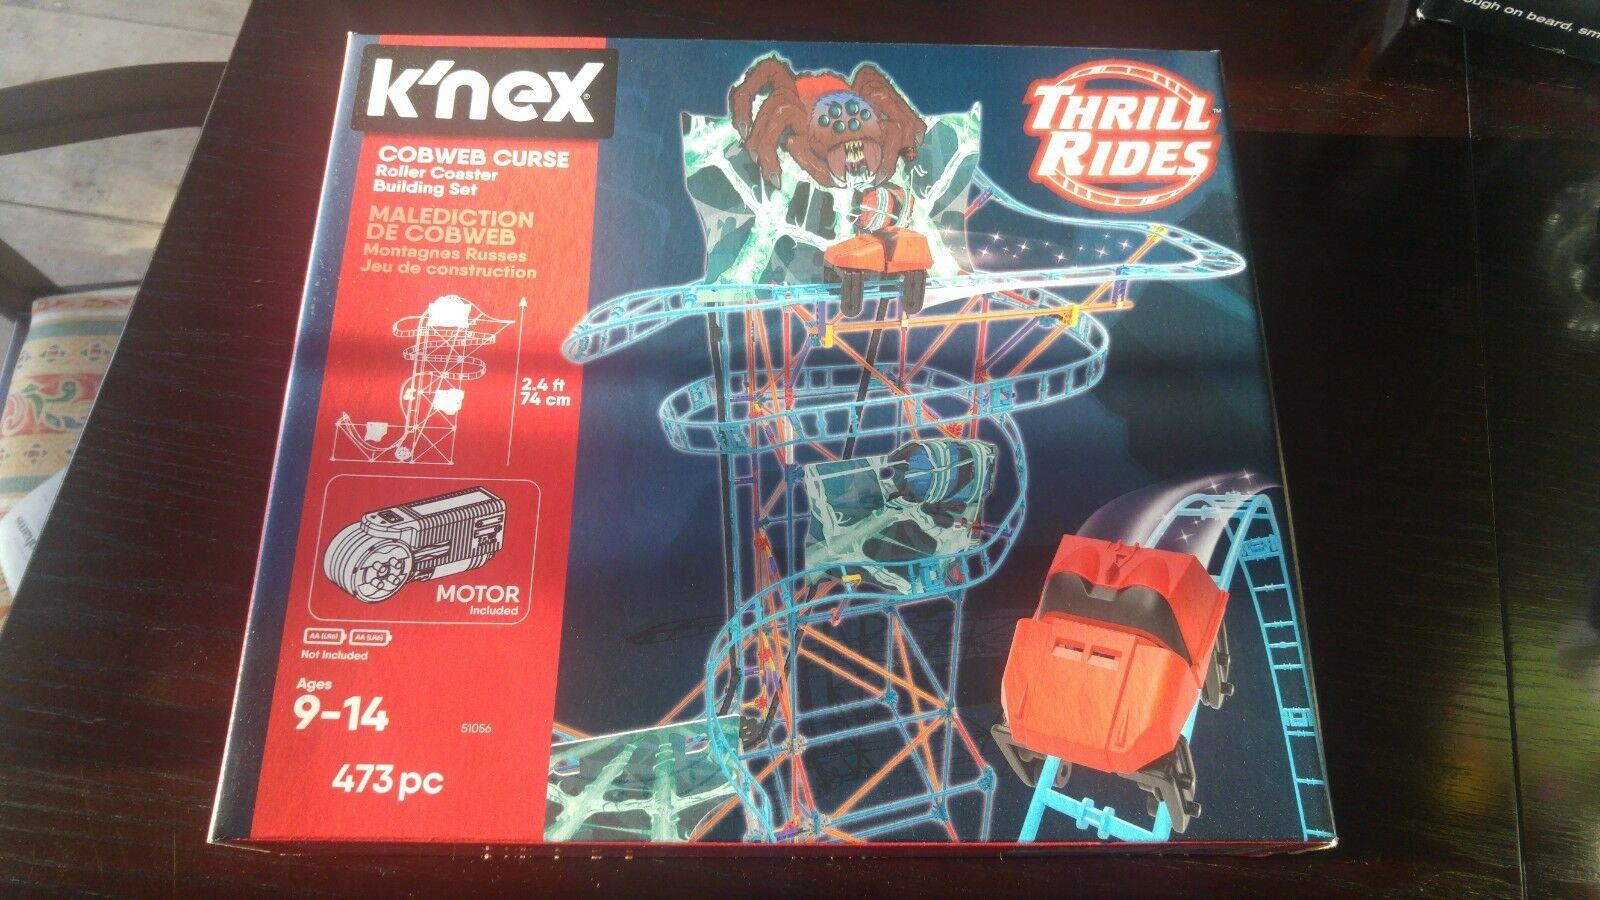 NEW K'NEX Thrill Rides Cobweb Curse Roller Coaster Building Playset 473pcs